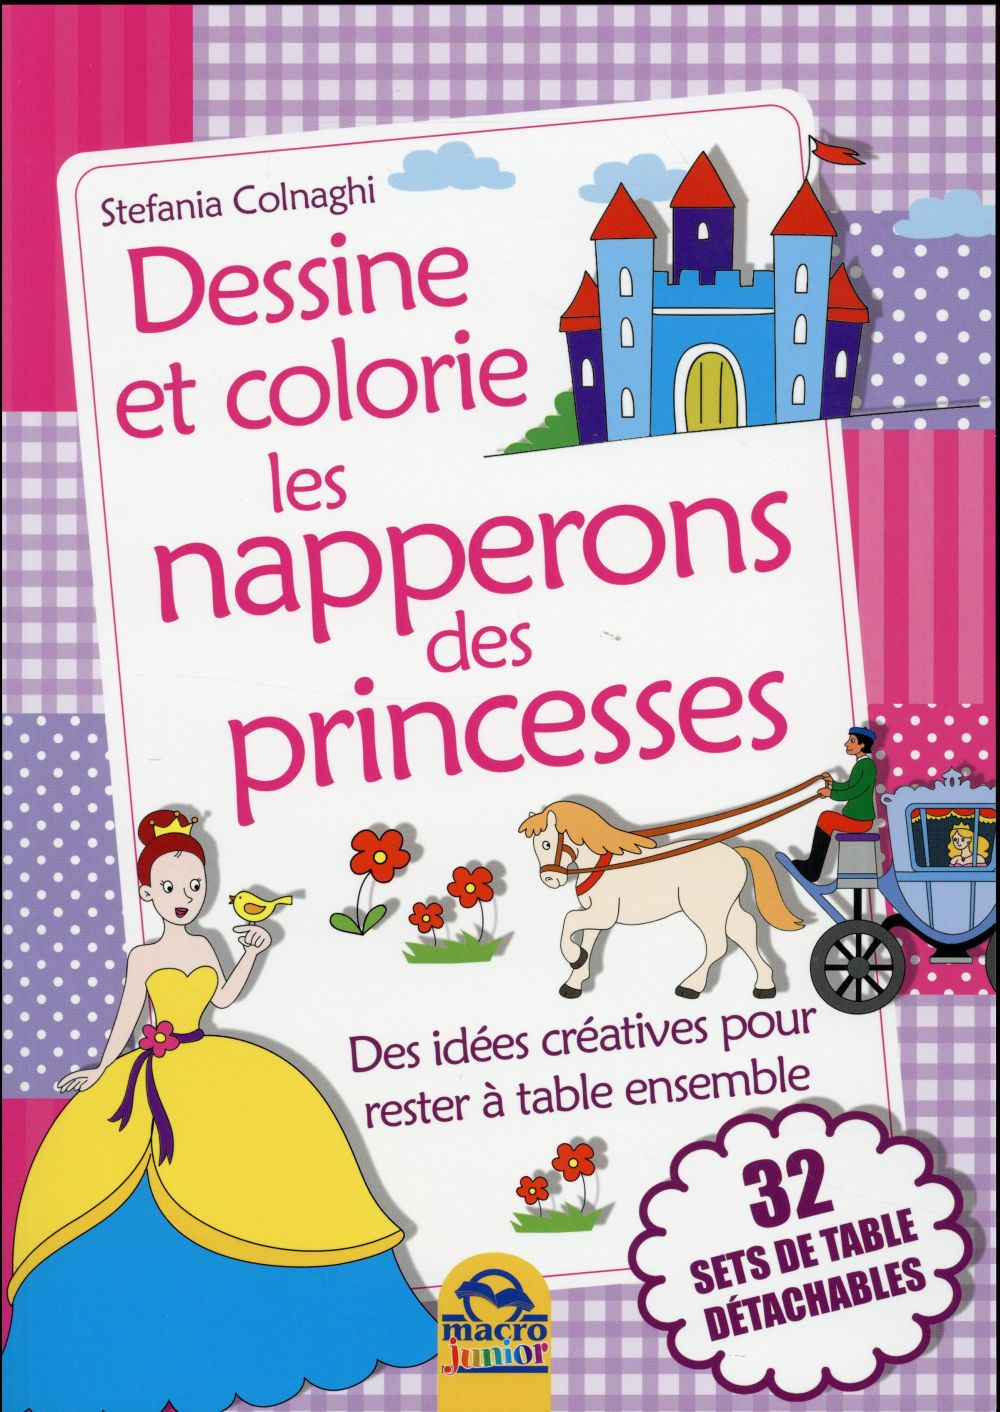 DESSINE ET COLORIE LES NAPPERONS DES PRINCESSES  32 SETS DE TABLE DETACHABLES - DES IDEES CREATIVES